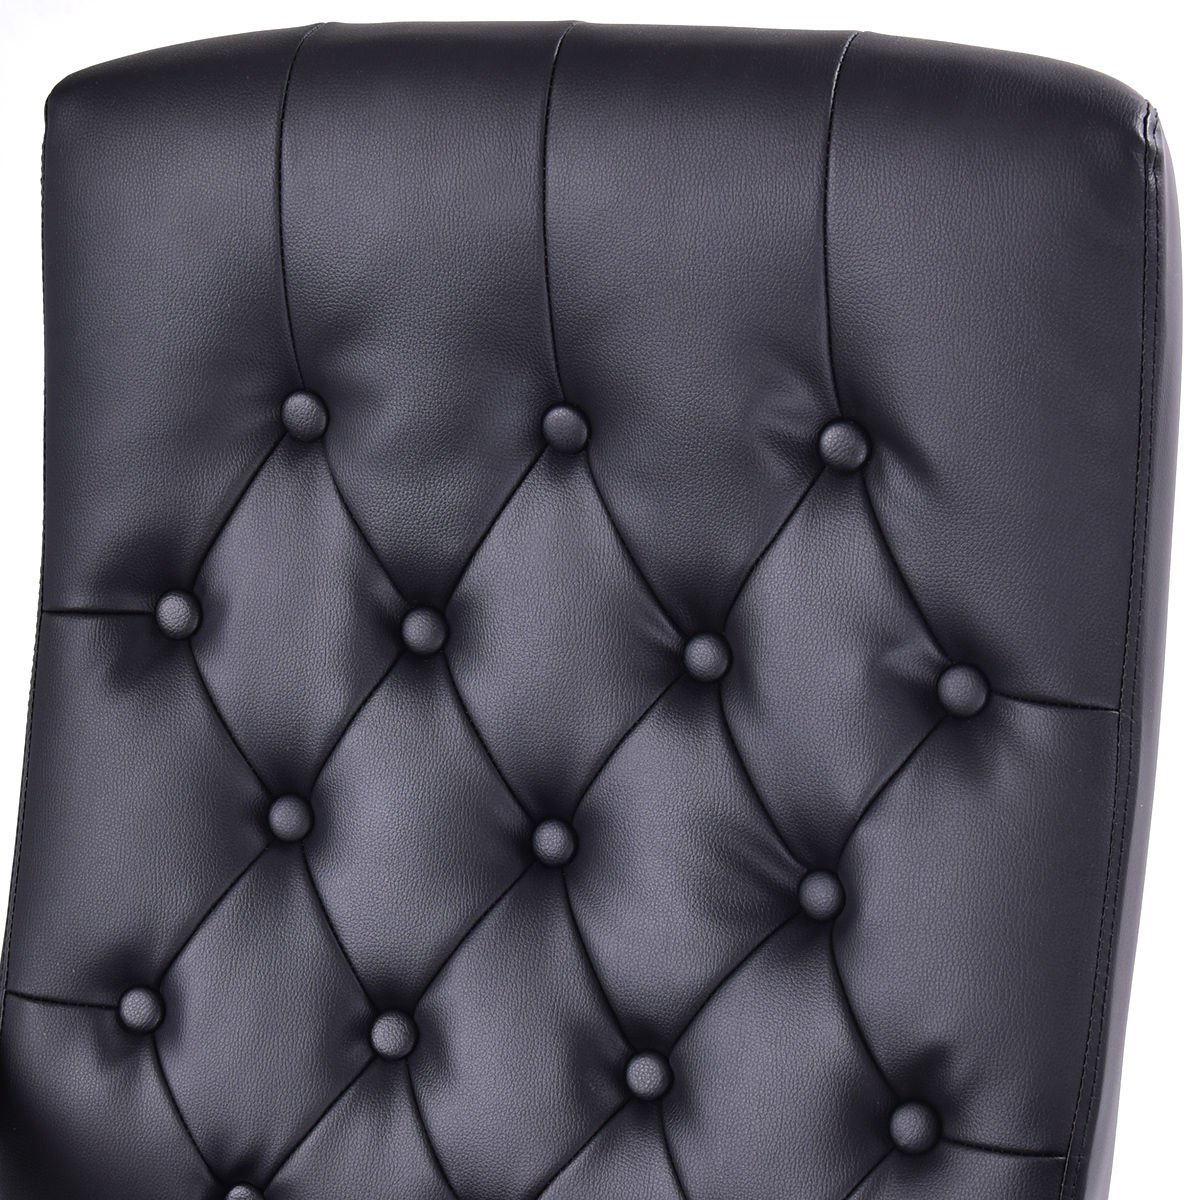 Giantex Ergonomic High Back Traditional Tufted Swivel Office Executive Chair, Black 3